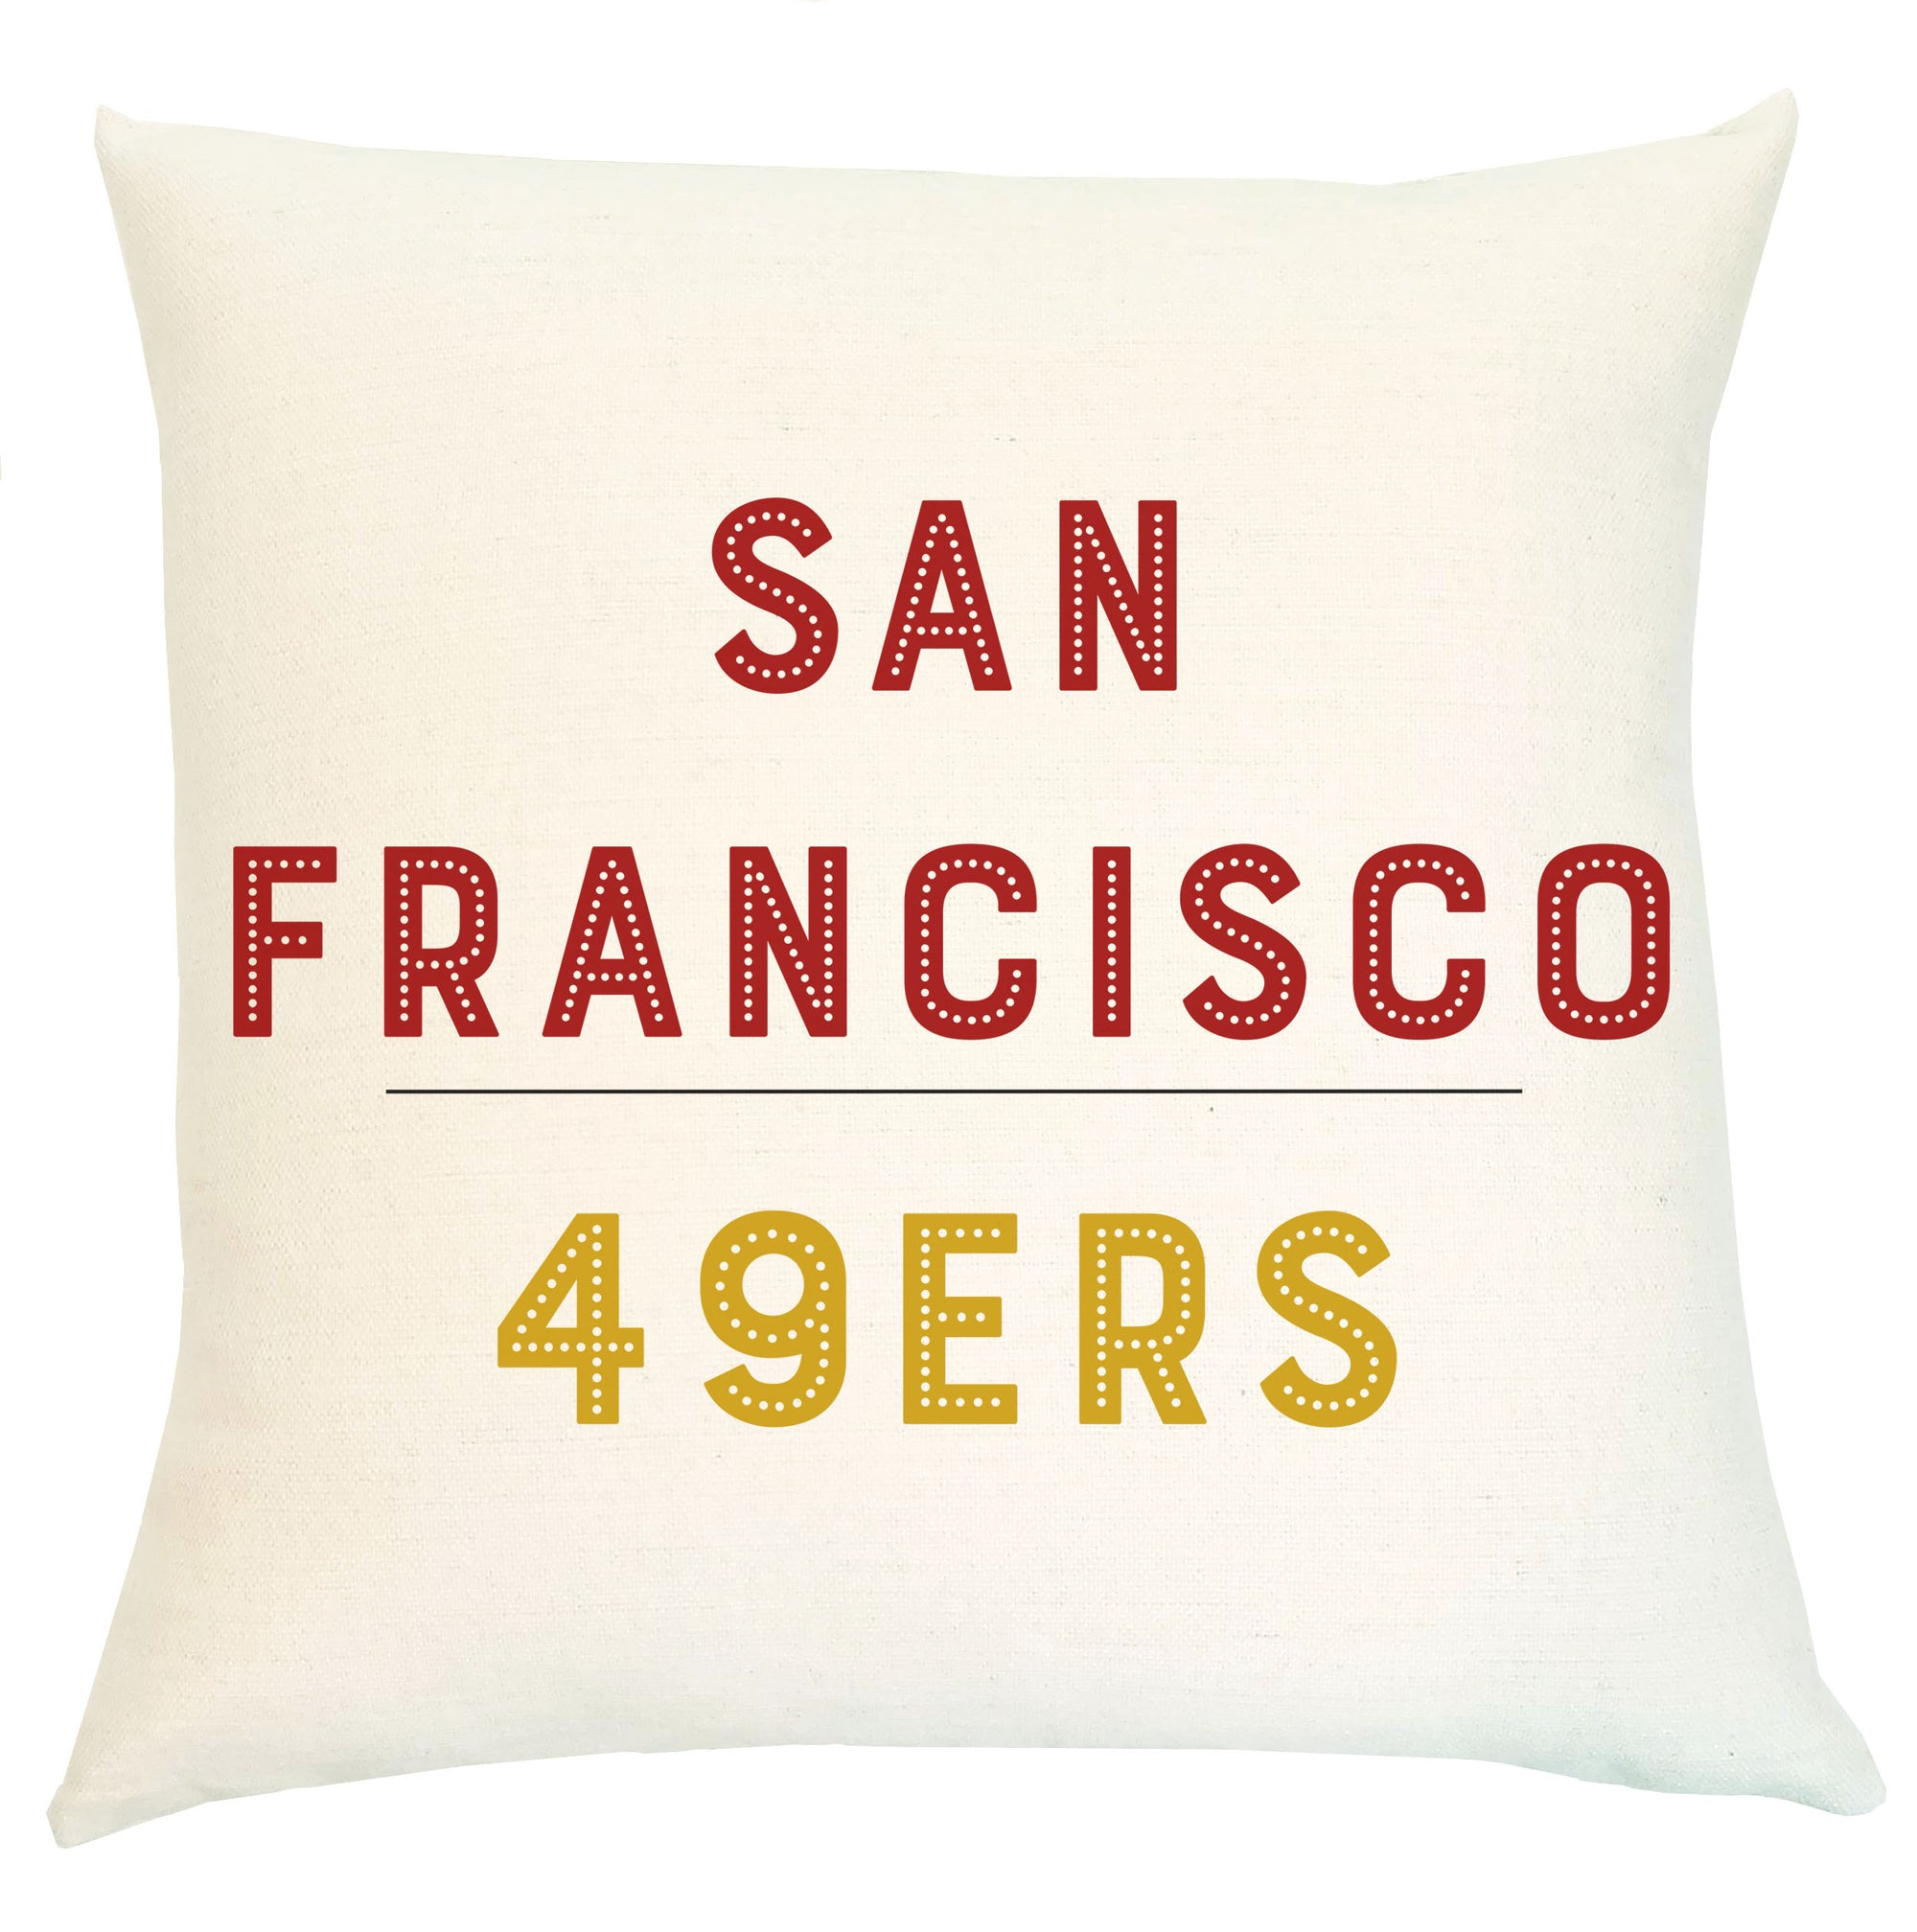 Pillow Personalized - NFL Football Team